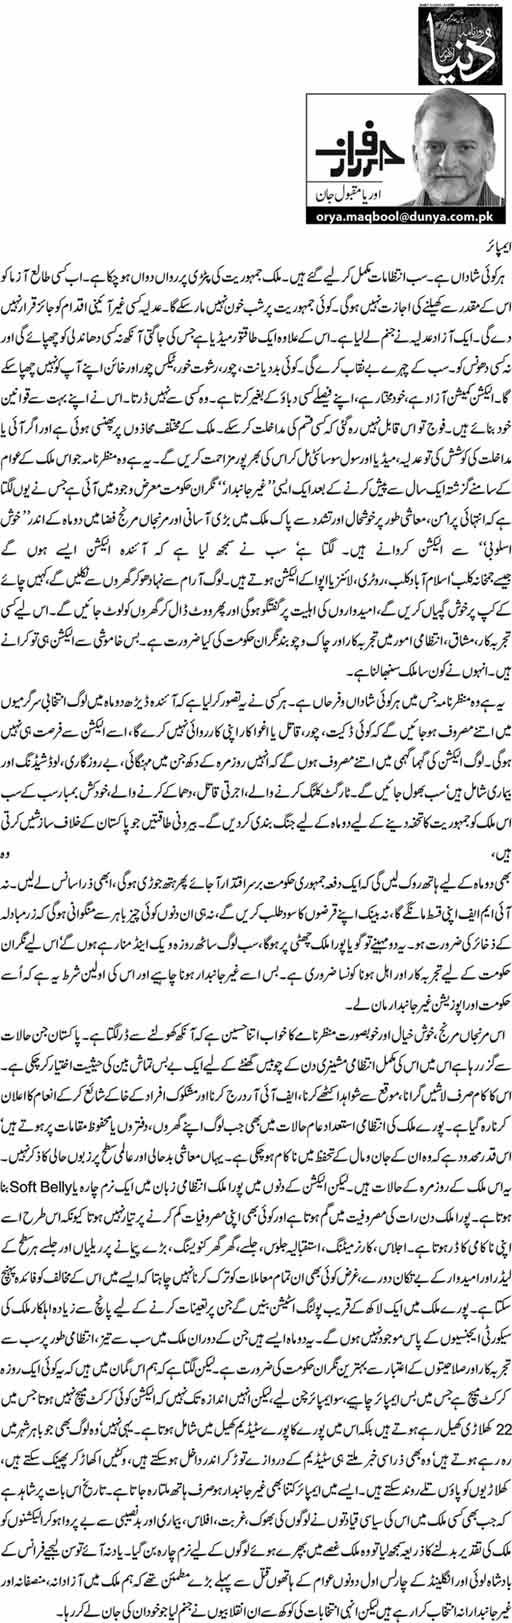 Empire - Orya Maqbool Jan